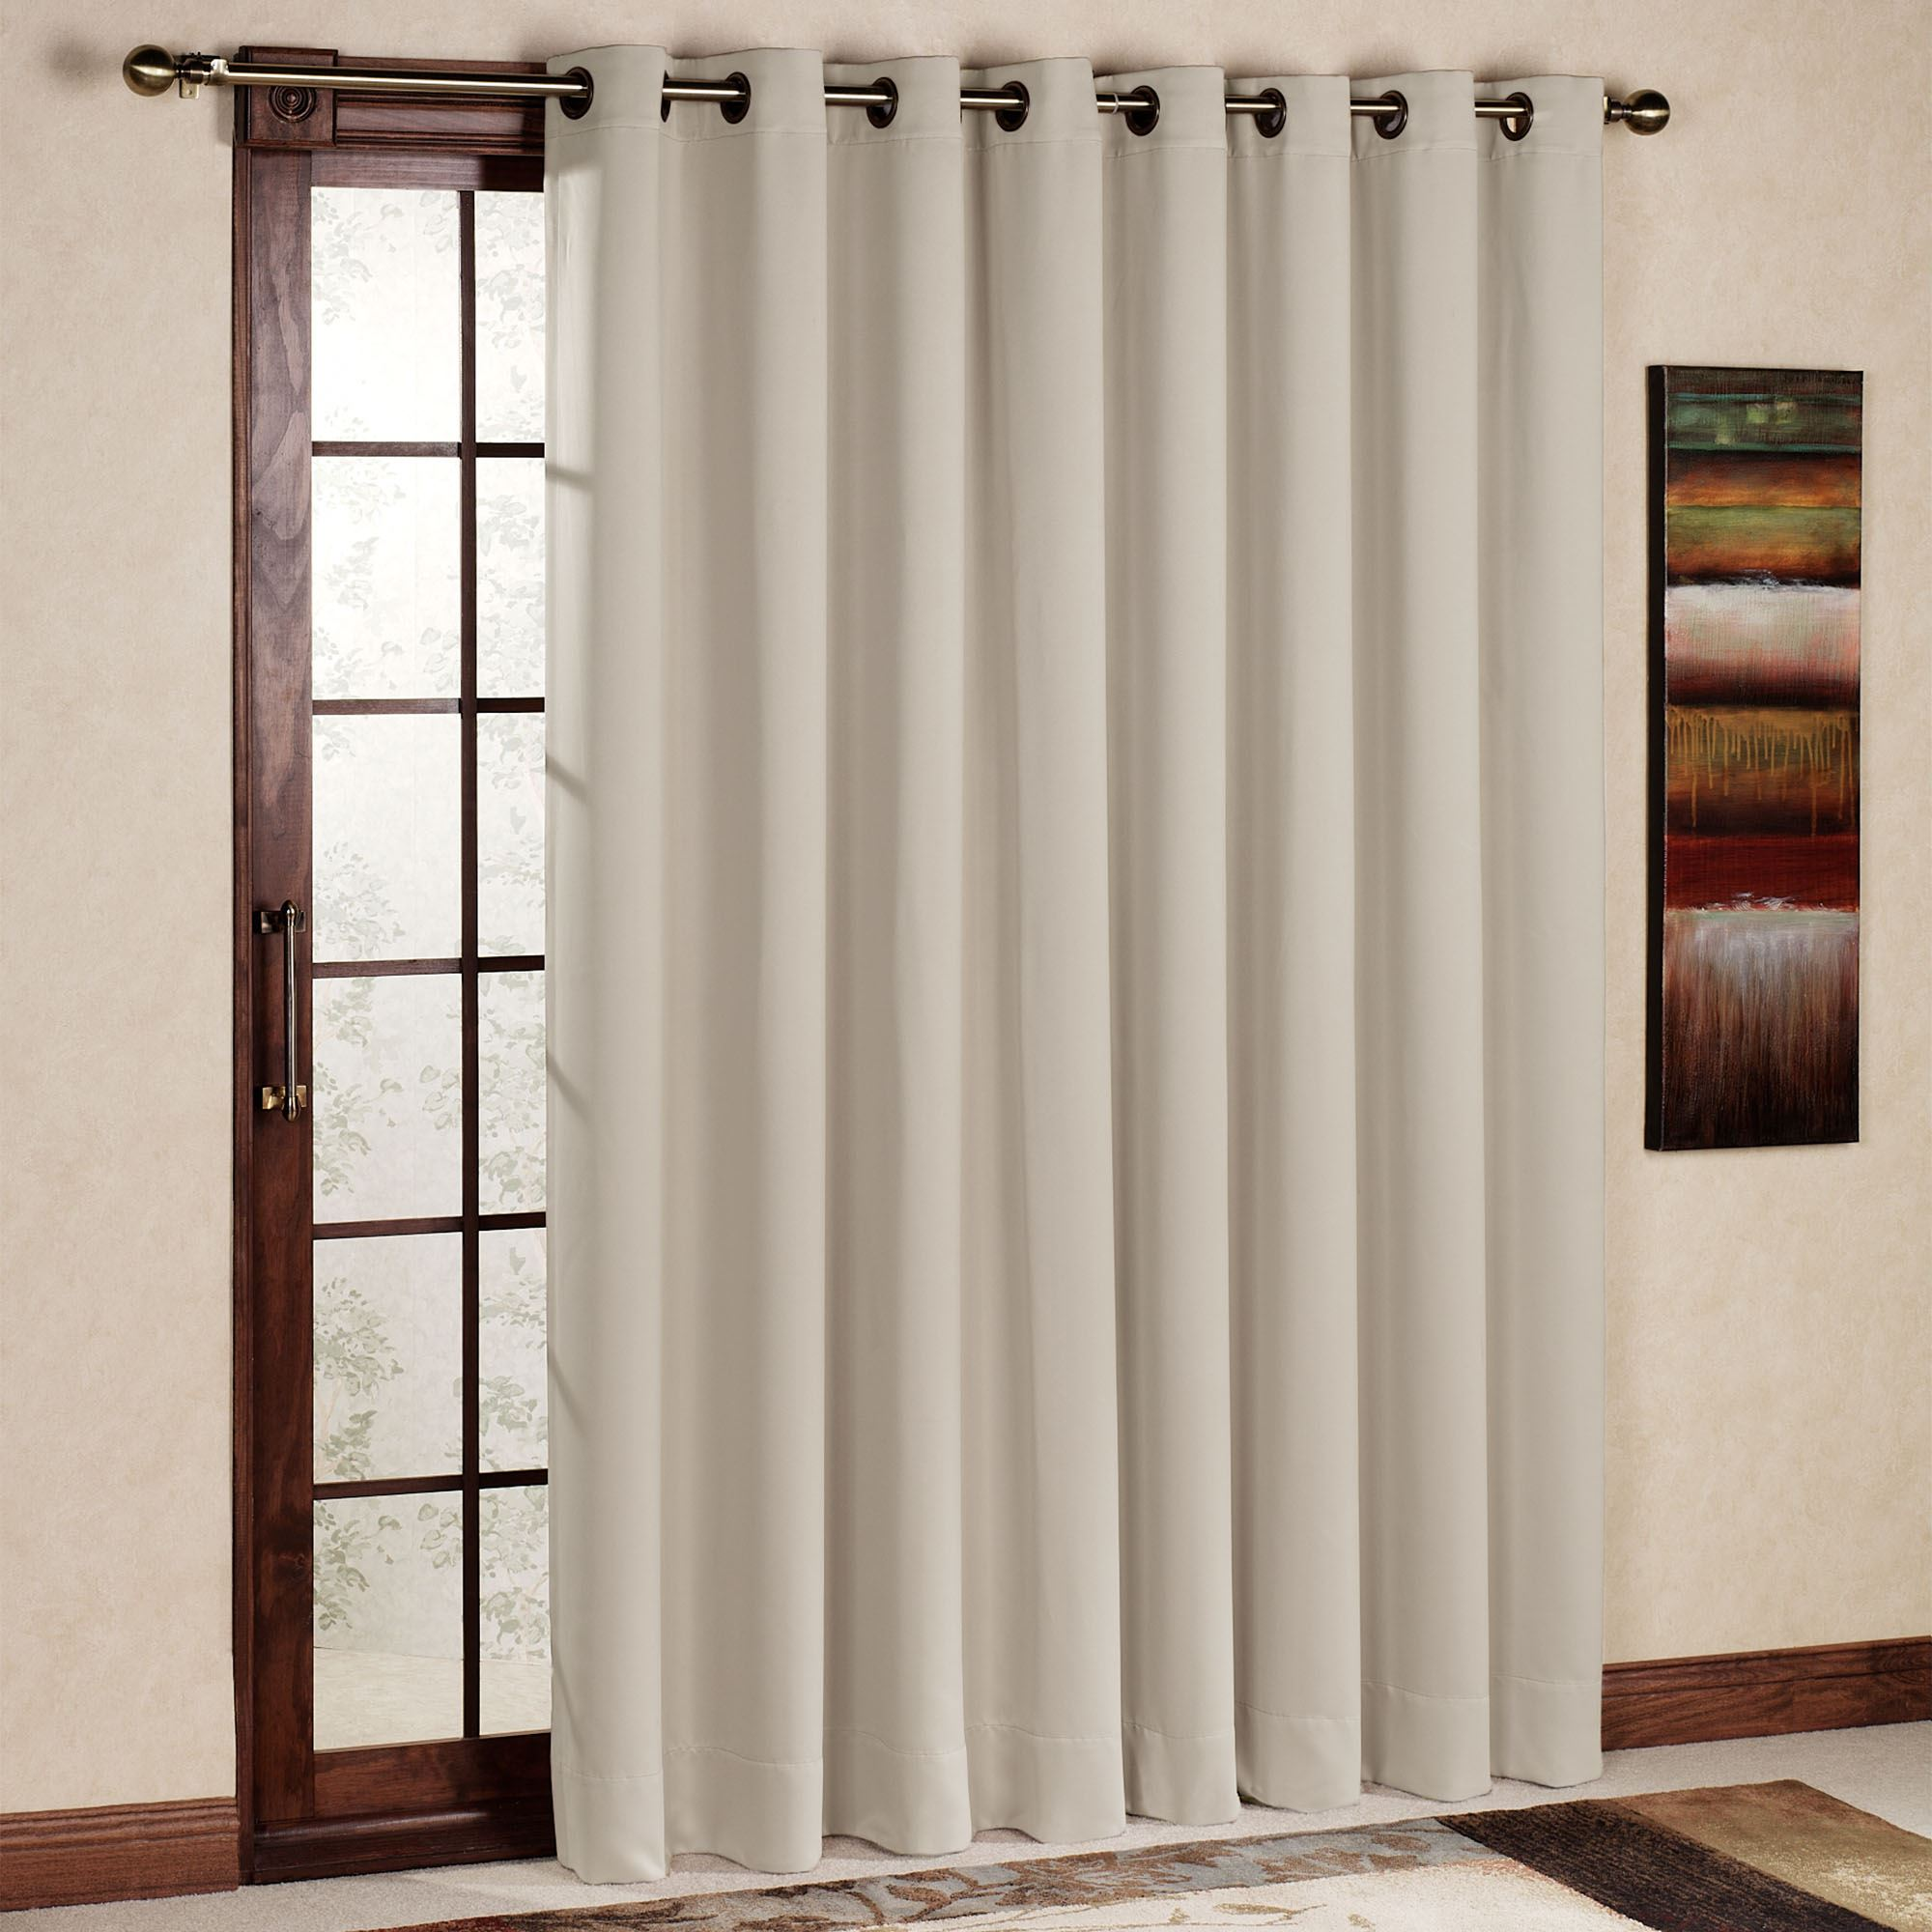 amp curtains inch with set blackout home grommet sheer mix curtain match aurora and piece itm silver muji